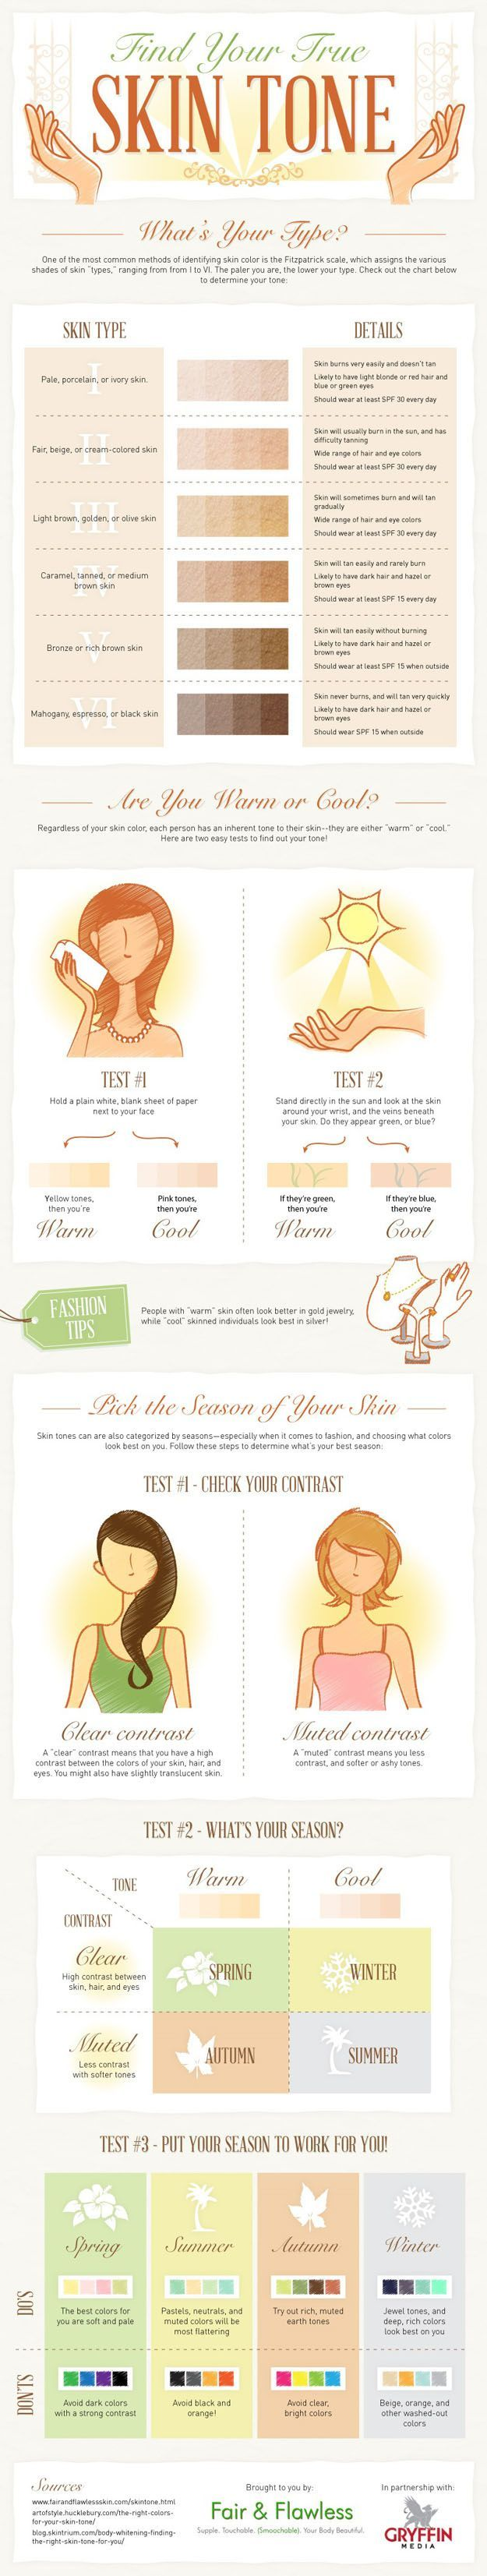 Makeup Tips and Tricks | Best Makeup Tutorials by Makeup Tutorials at http://makeuptutorials.com/makeup-tutorials-beauty-tips